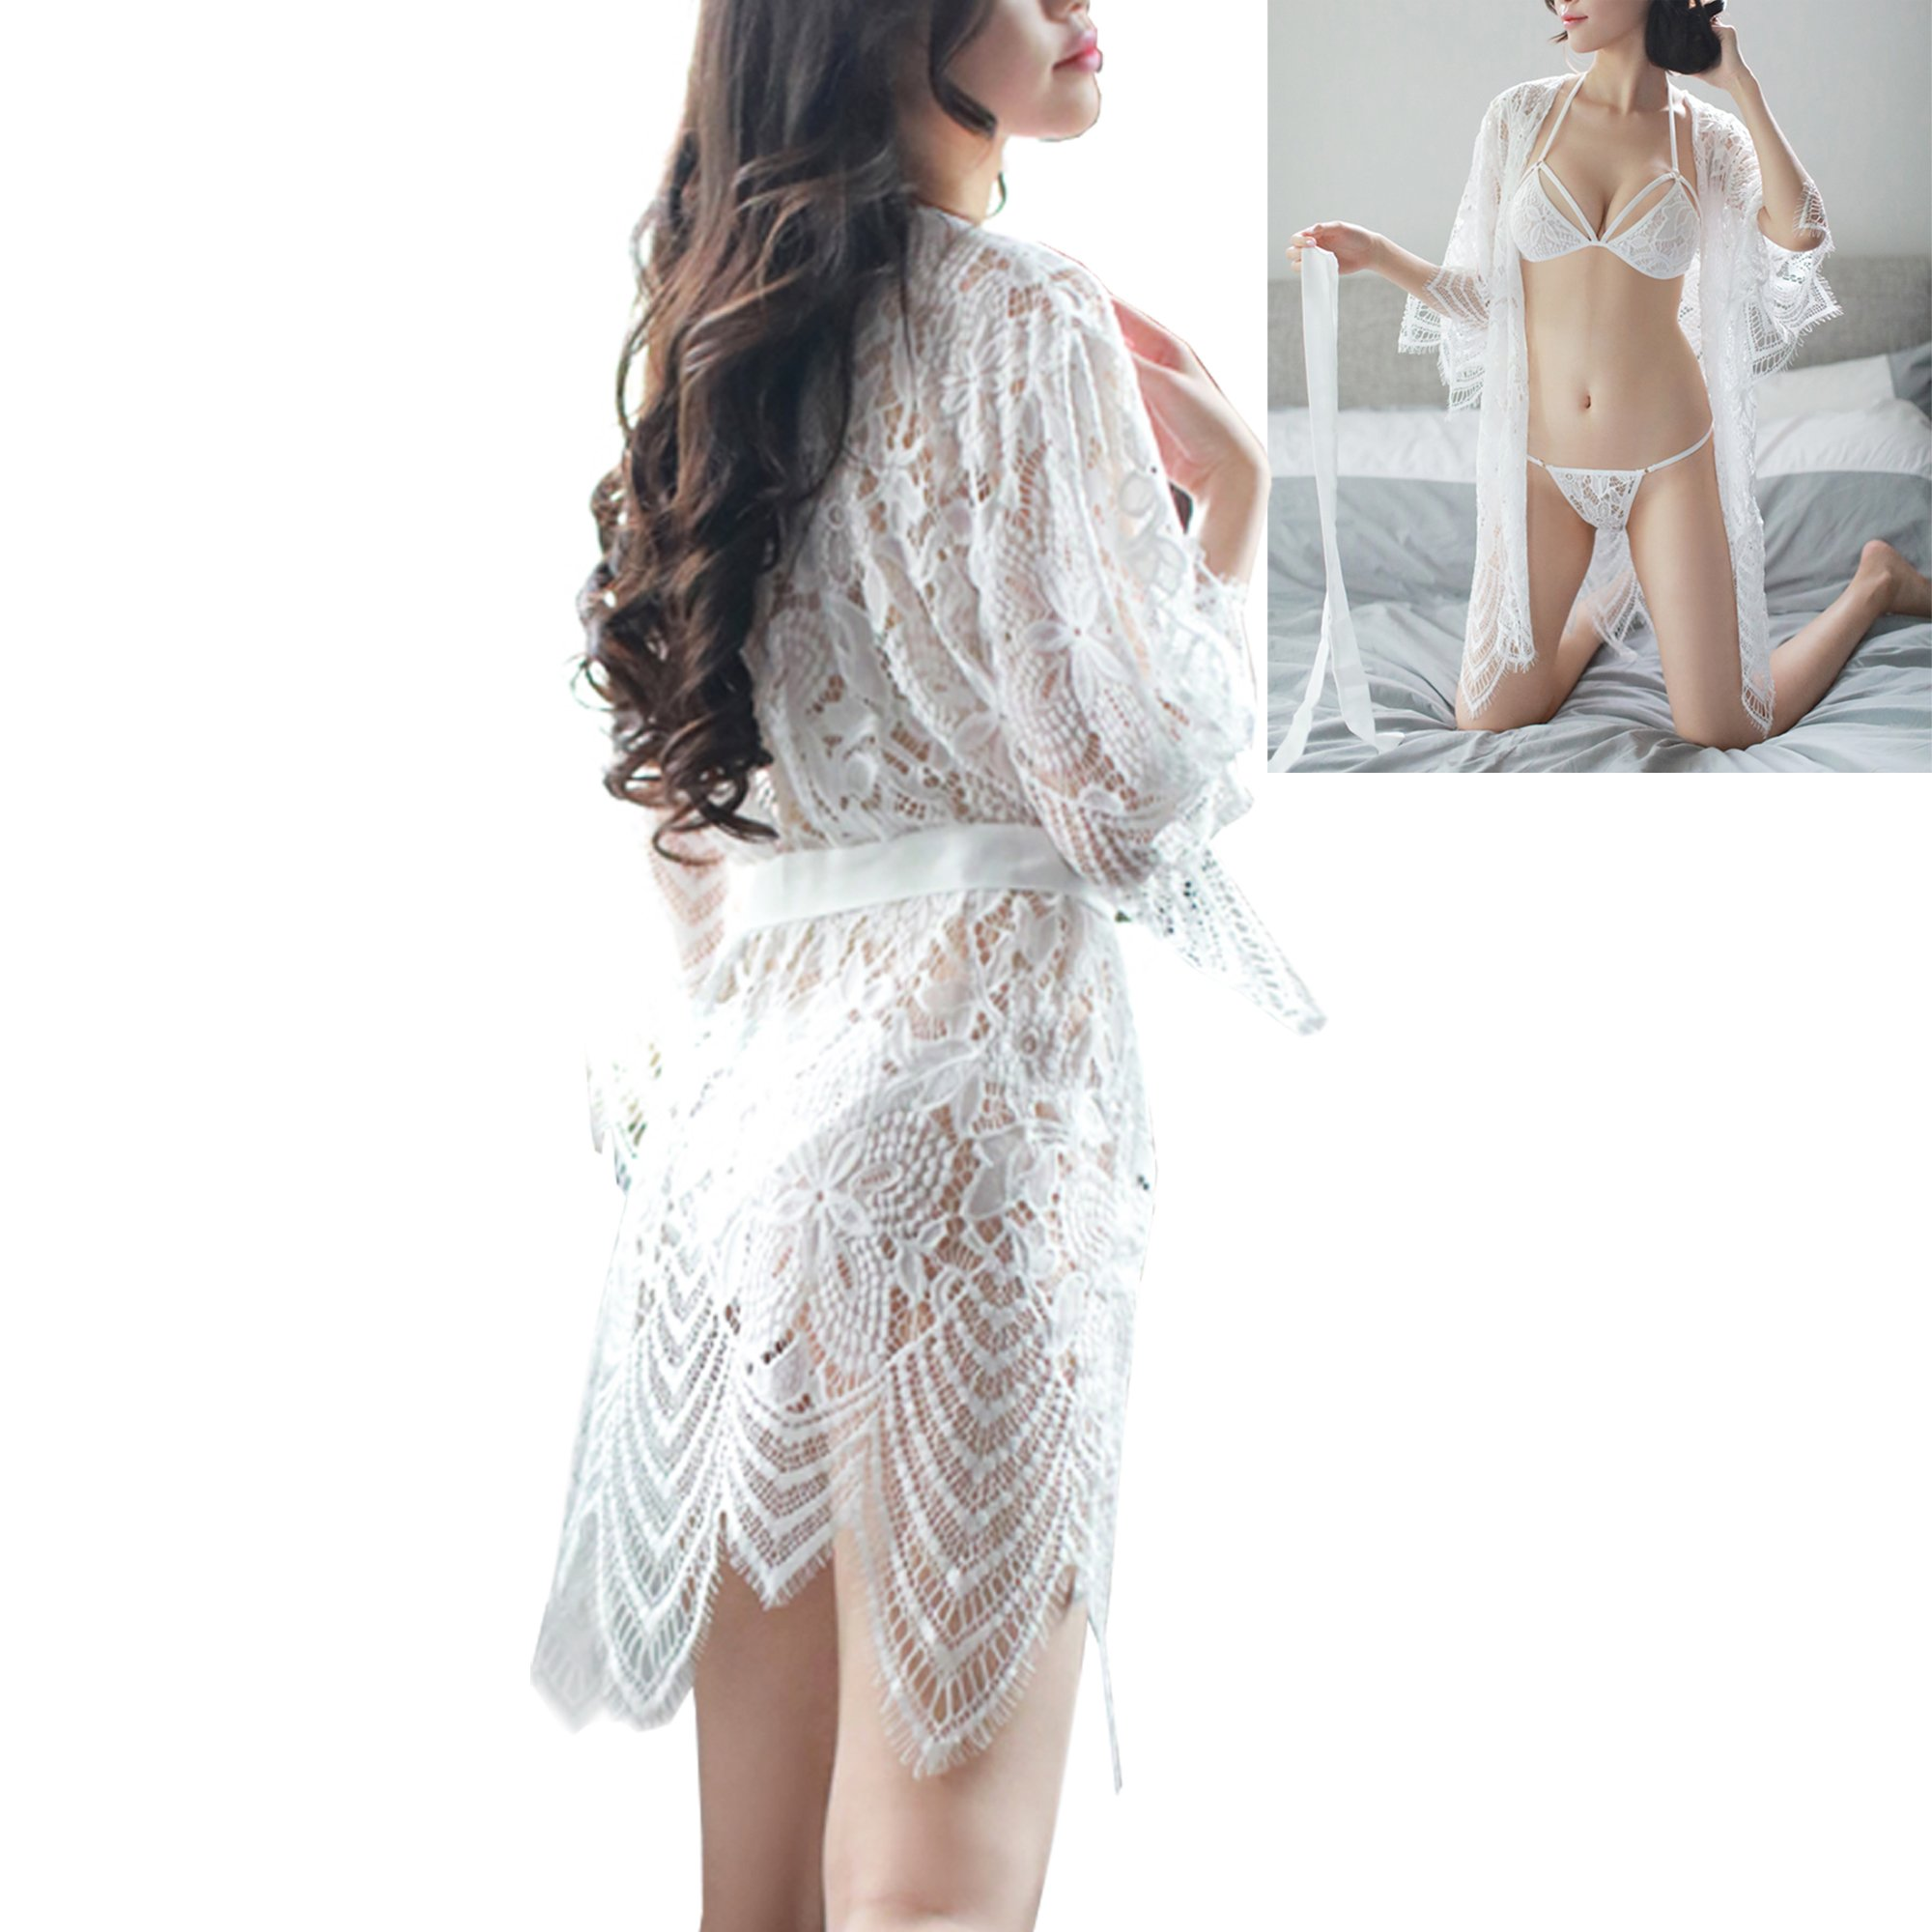 SS Queen Women Lace Sleepwear Lingerie Robe Kimono Nightgown 3 Pieces Pajamas (one Size, White)